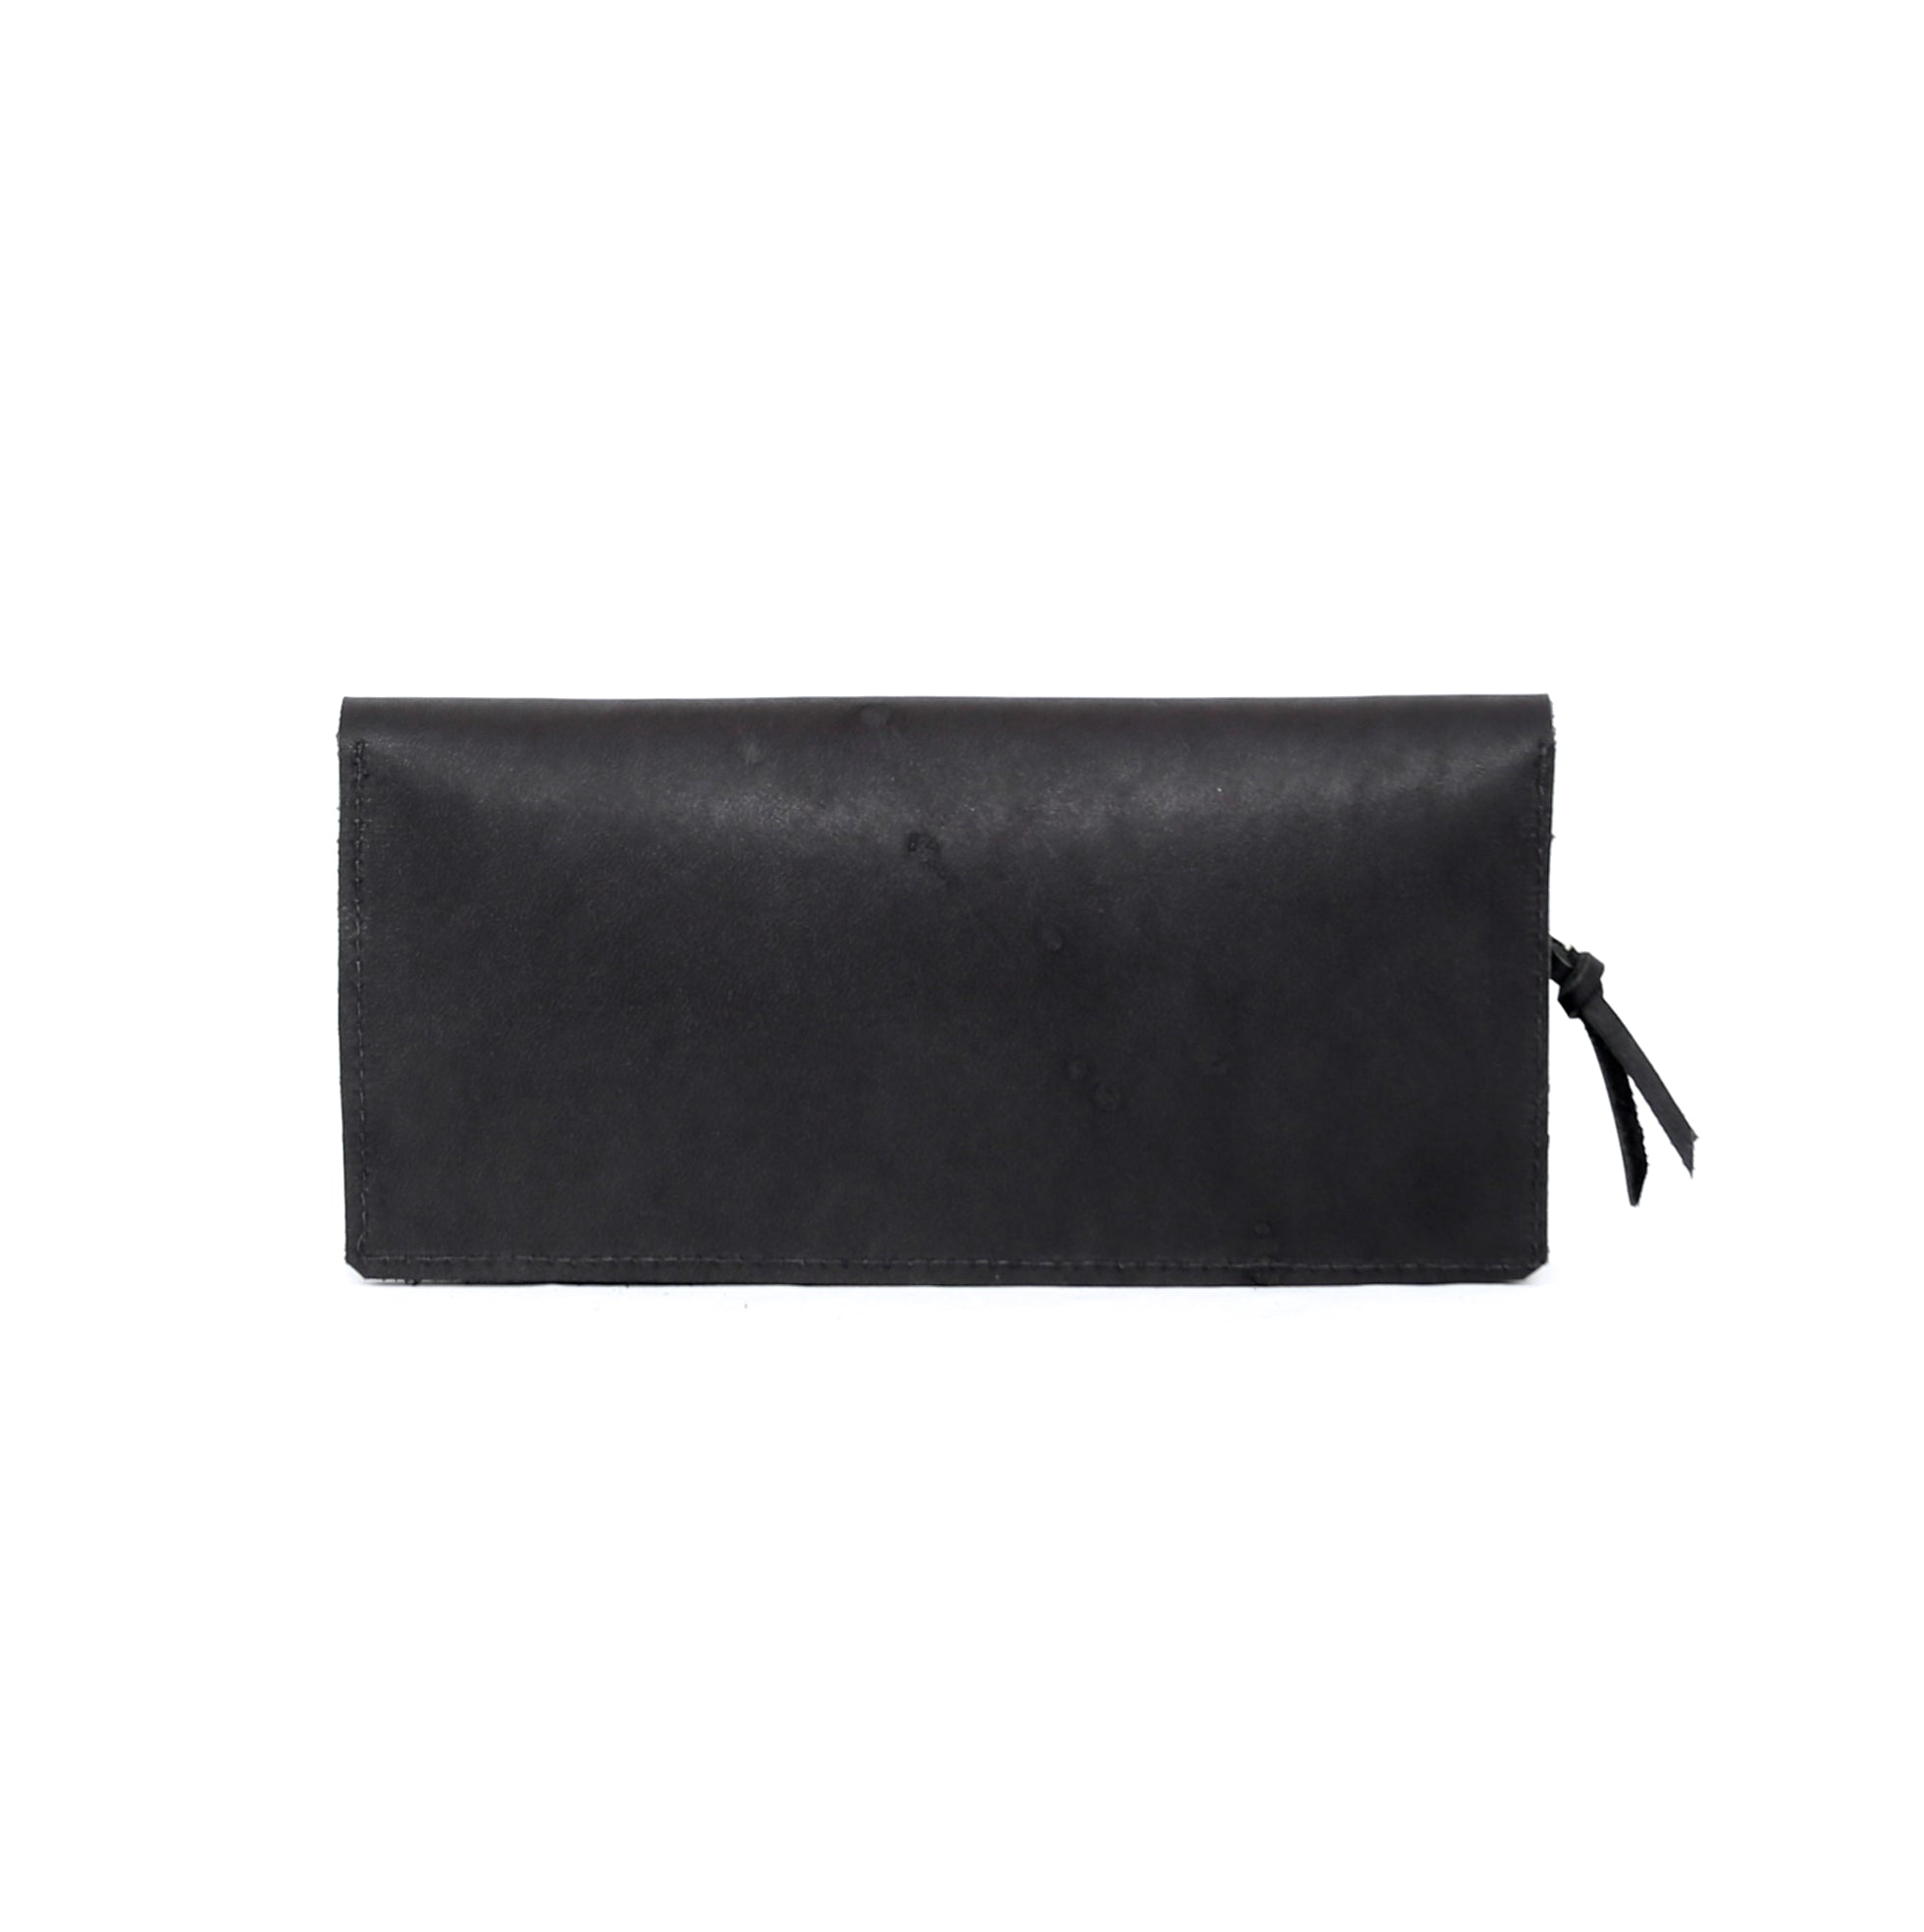 Women's Wallet in Black Leather - handcrafted by Market Canvas Leather in Tofino, BC, Canada